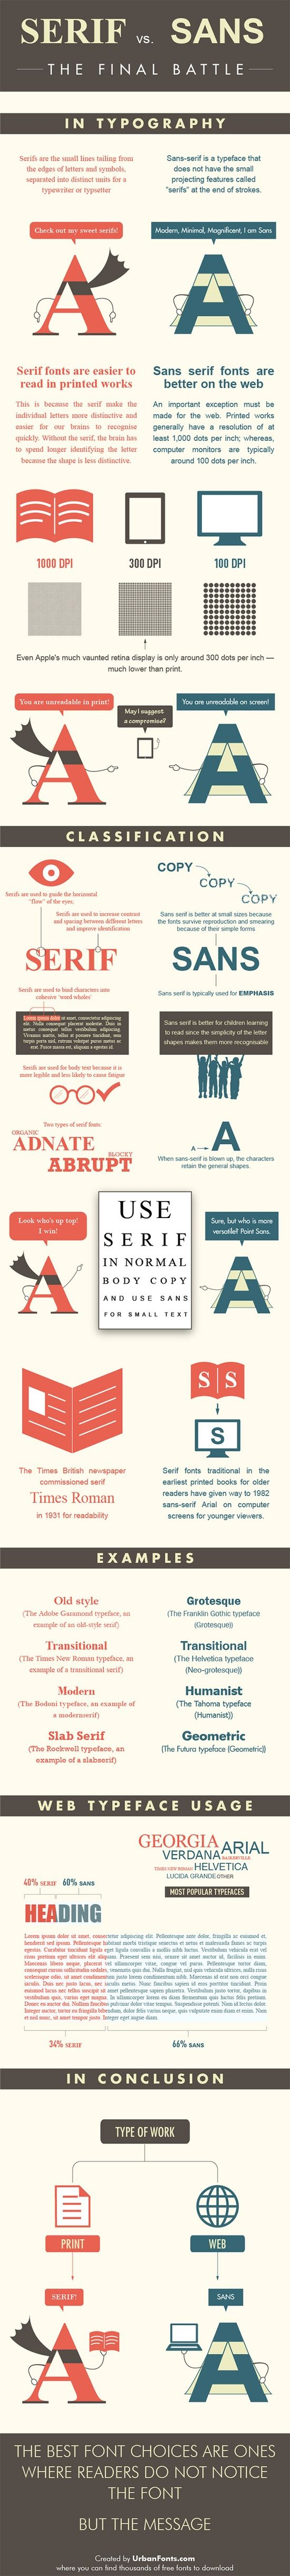 Serif Vs Sans infographic explains why Serif is best for print media whereas Sans works well on the web. Remember designers, print and web are NOT the same. One size doesn't fit all ads.